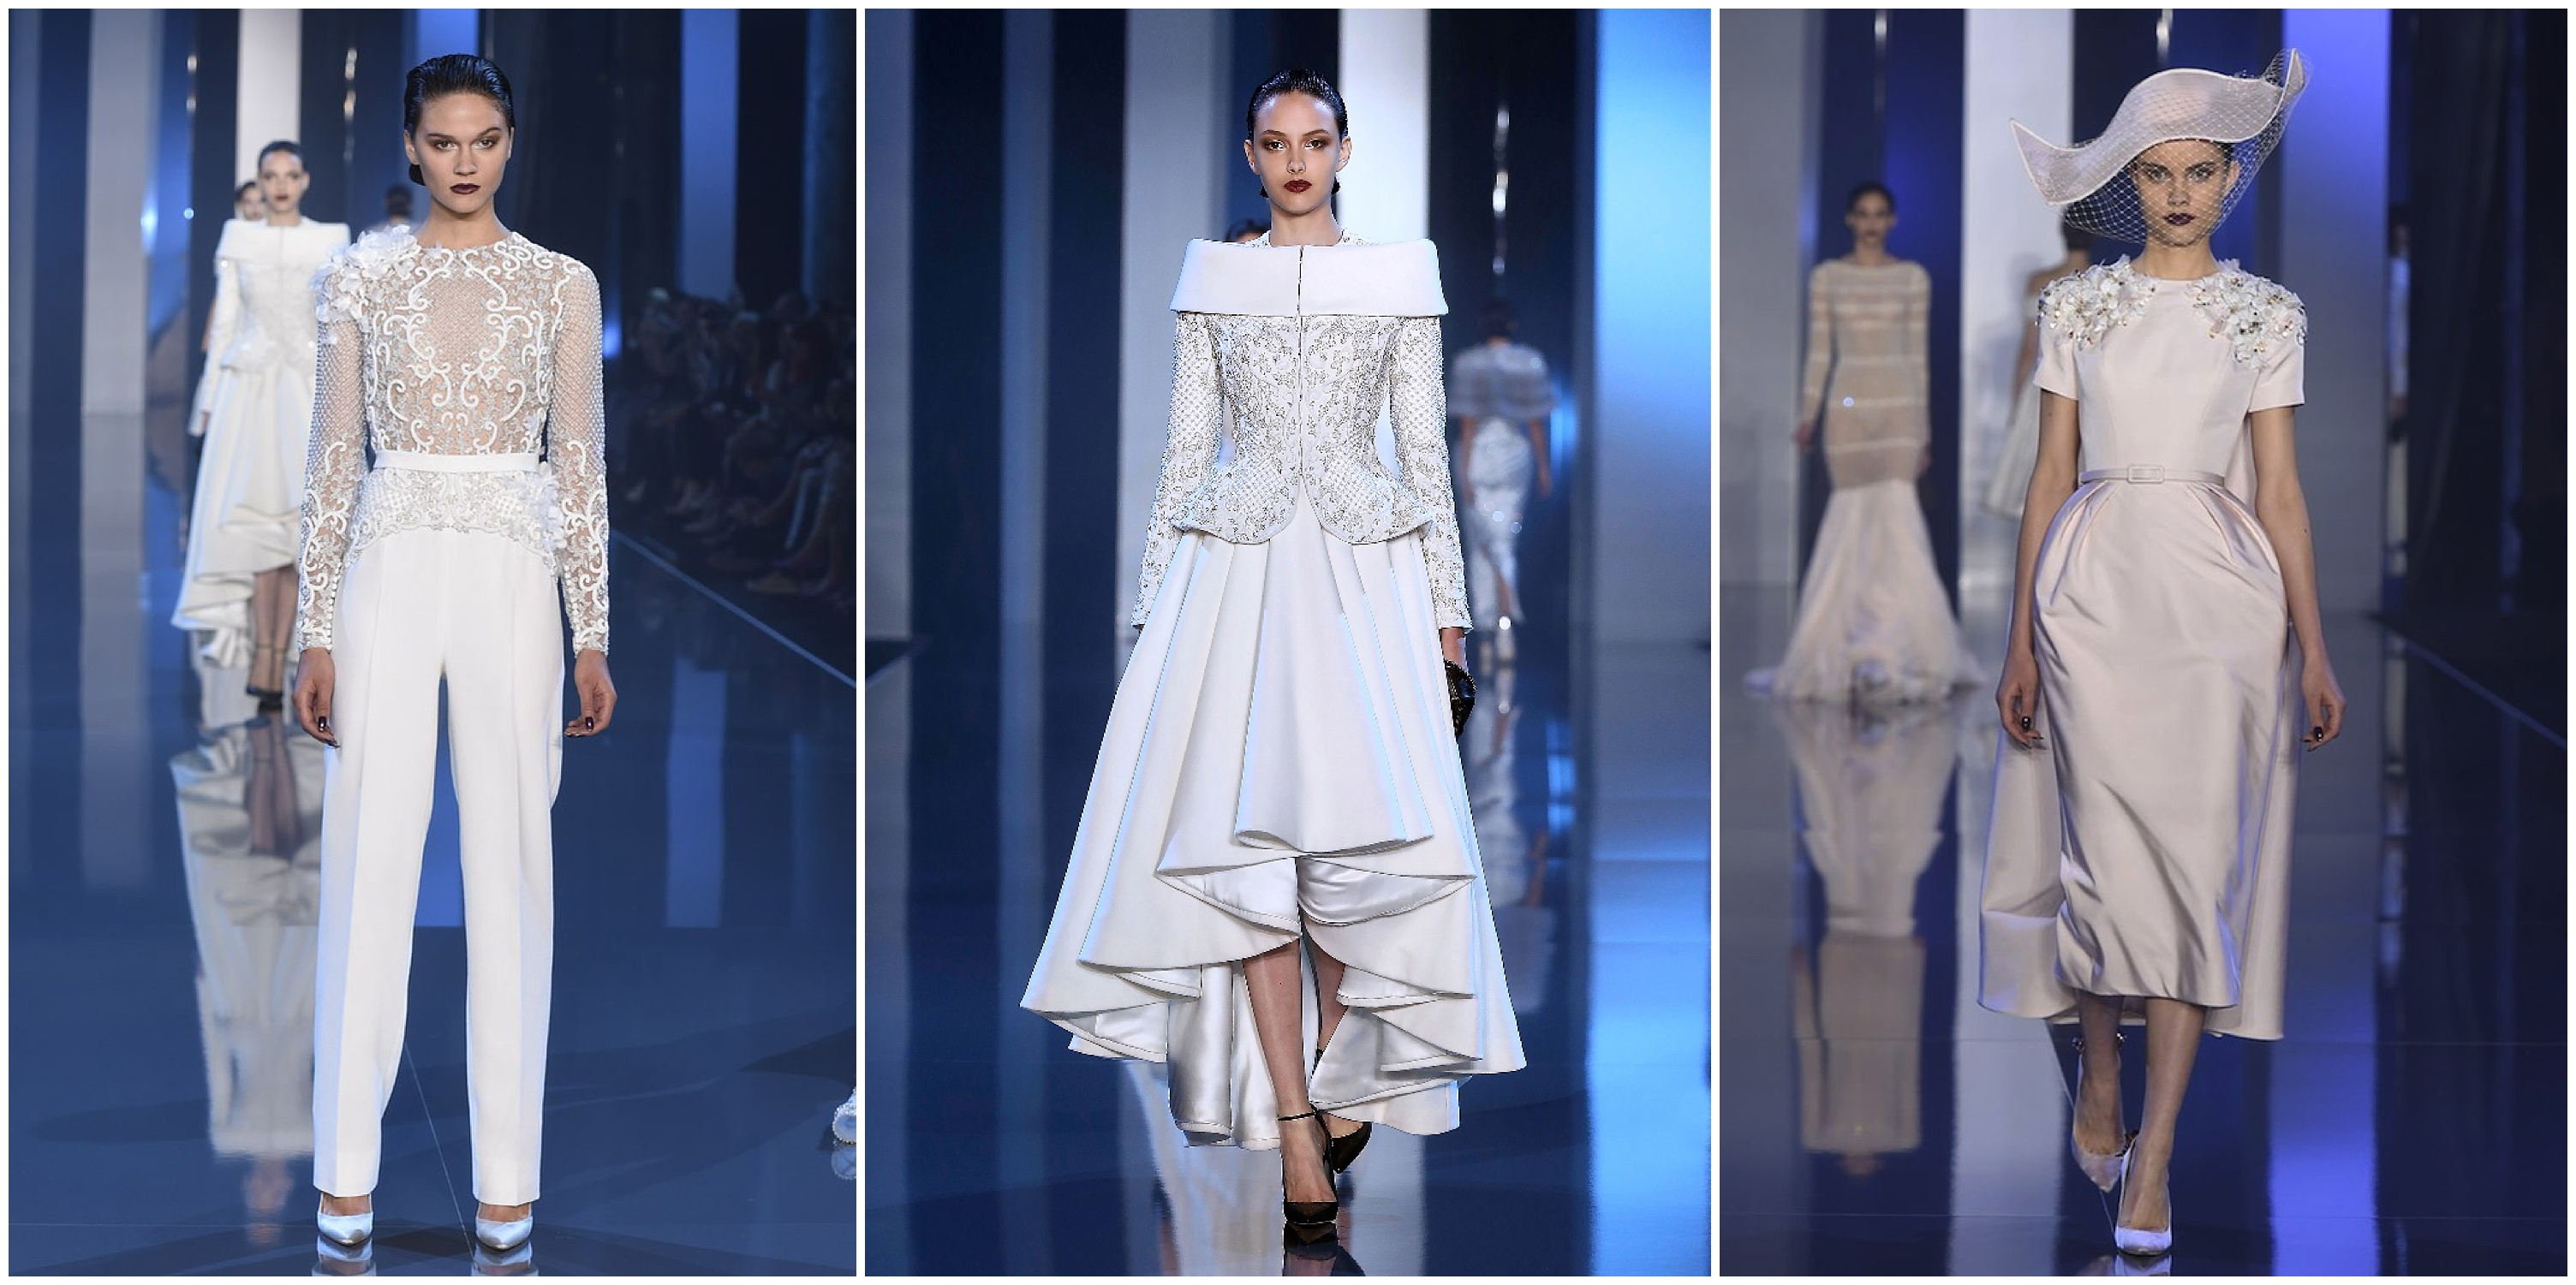 Fashion Alert: Ralph Russo 2014 fall couture